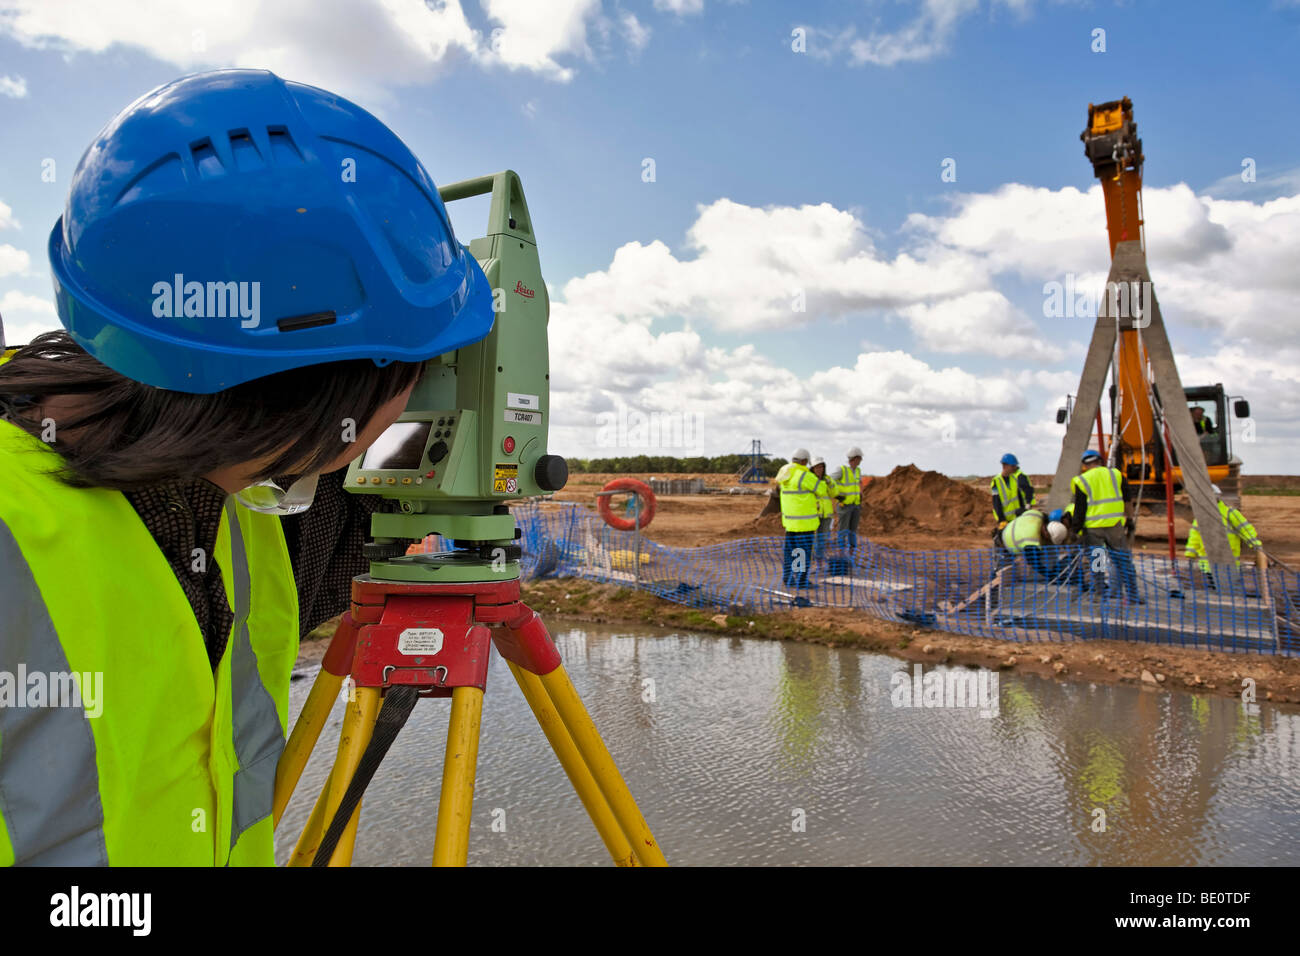 Surveyor working on bridge construction. - Stock Image